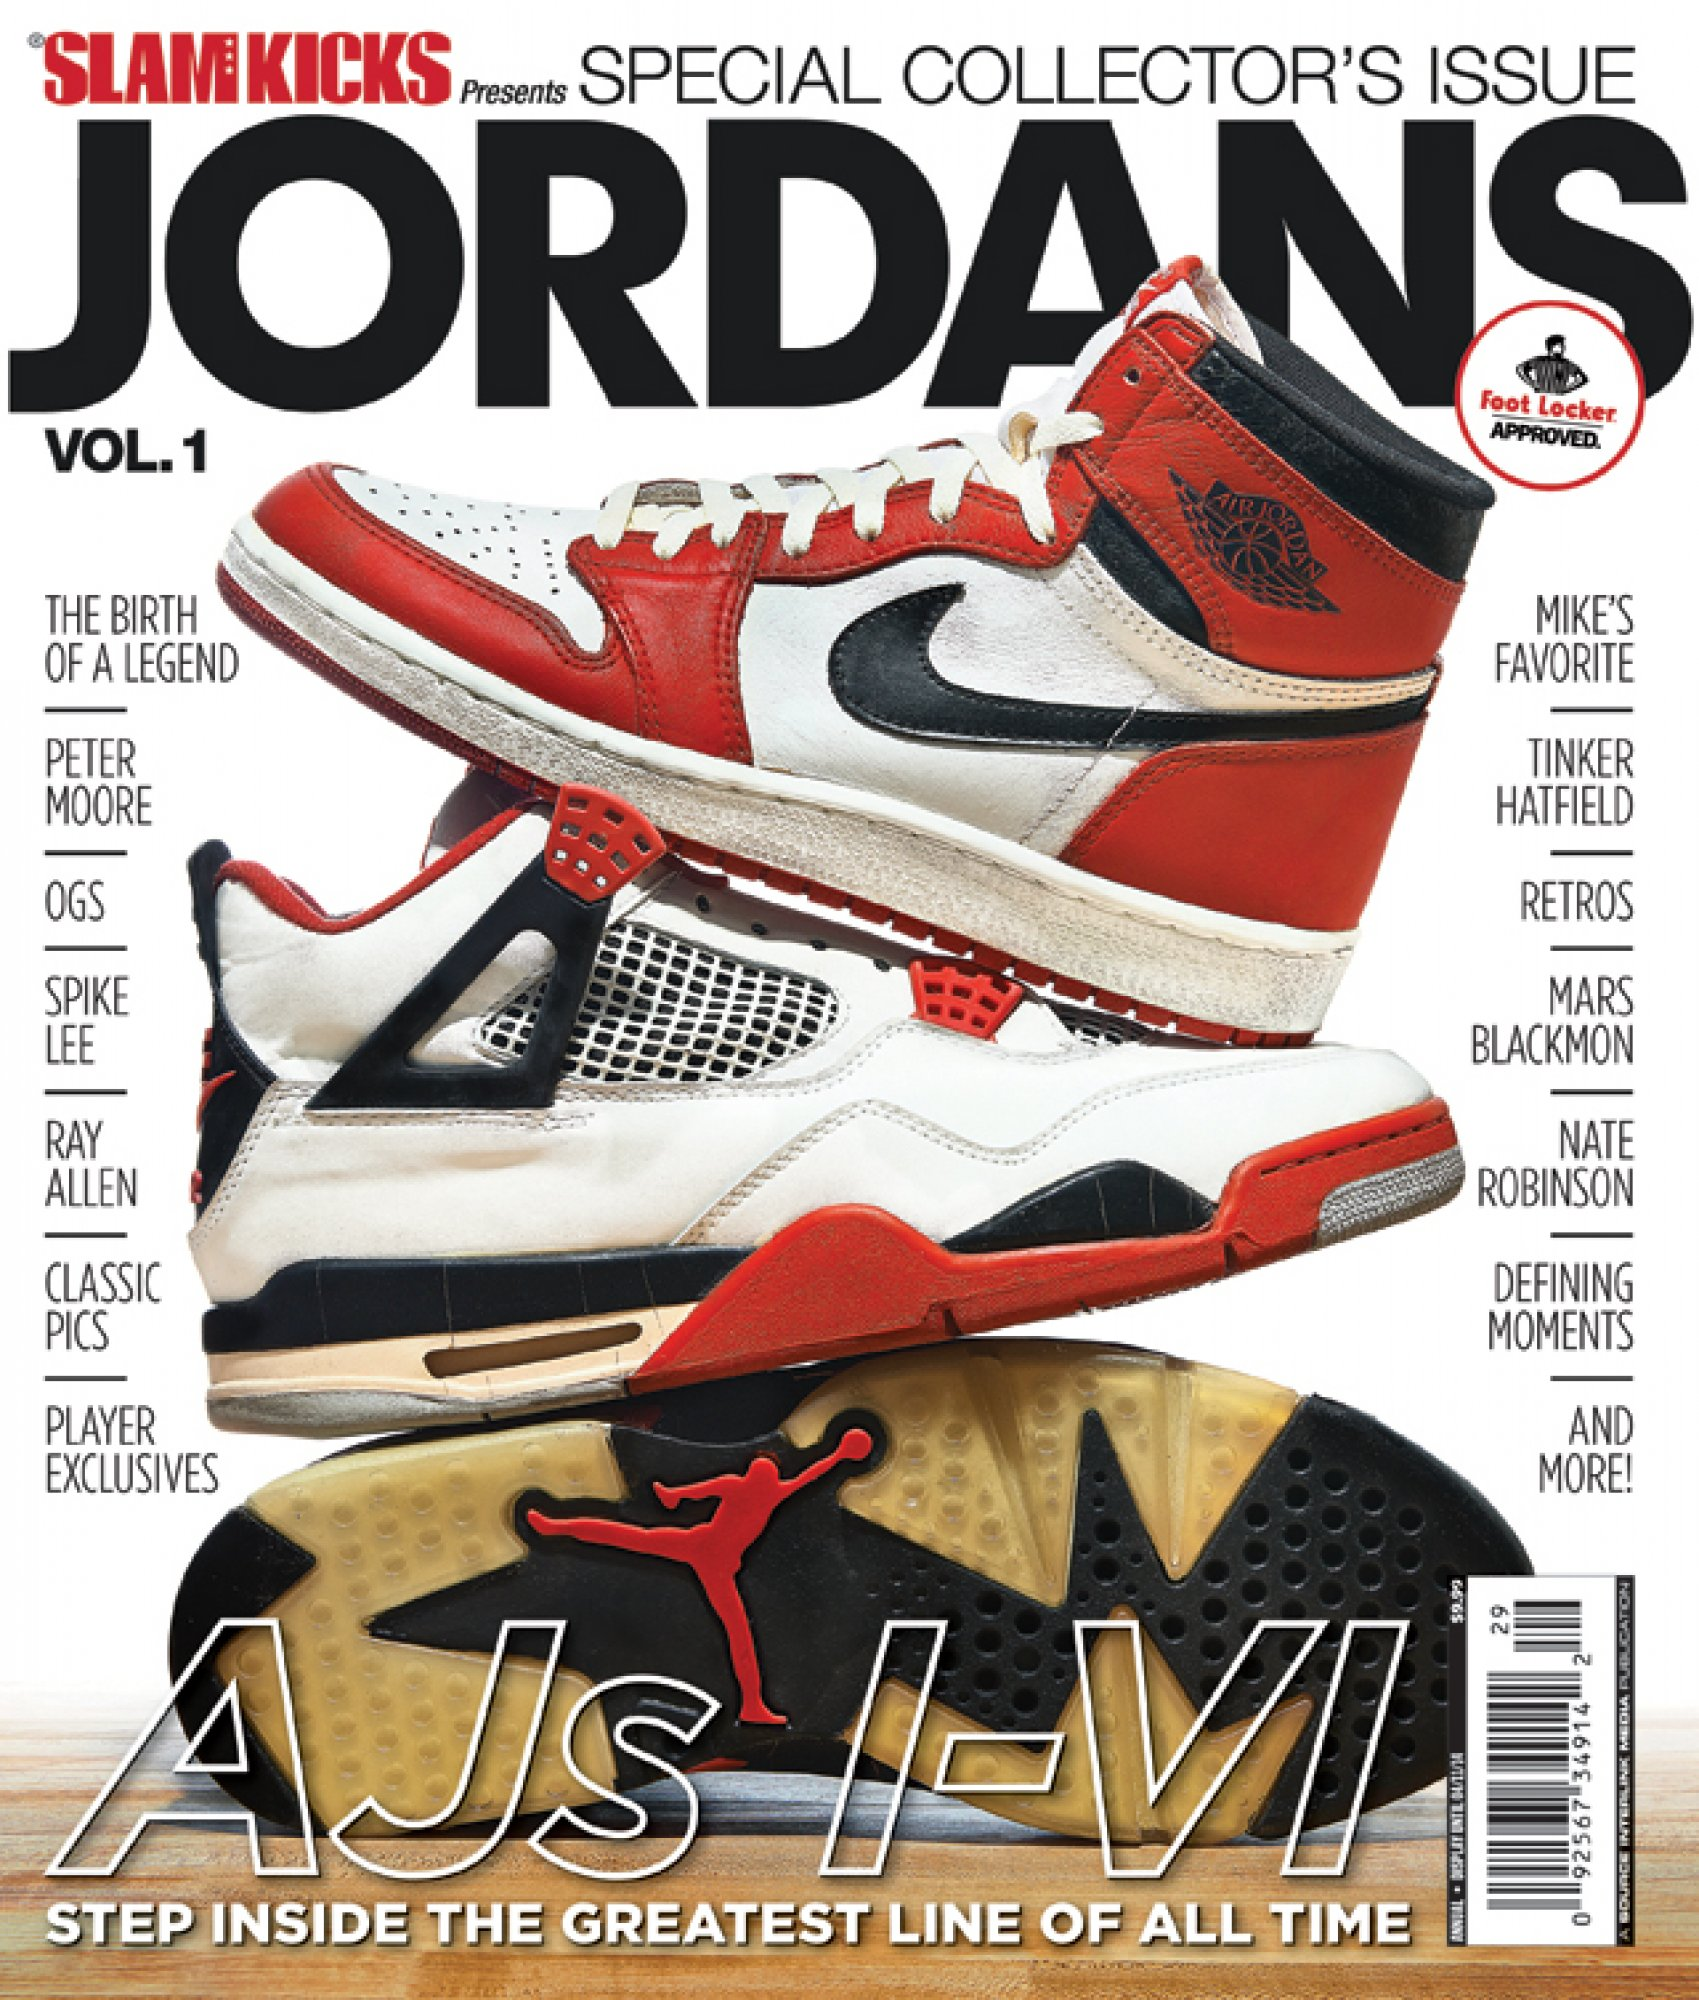 Slam Kicks presents JORDANS Vol 1